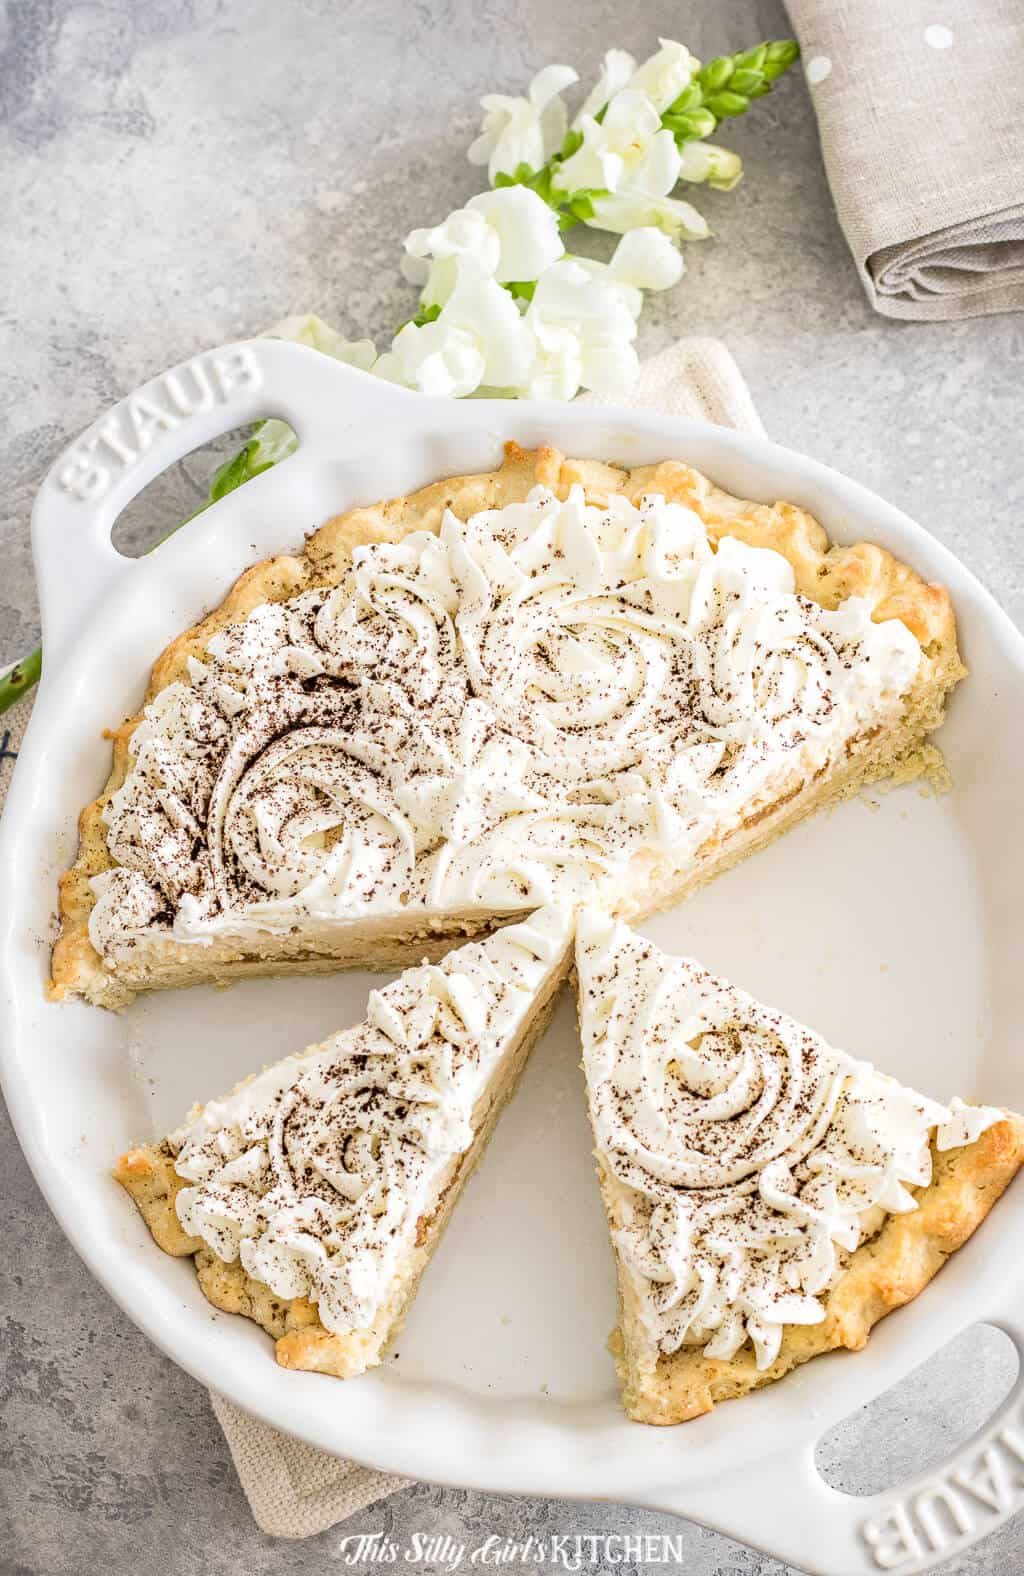 Tiramisu Pie, Layers of sweet mascarpone cream with ladyfinger cookies and fresh whipped cream all in an irresistible pie crust. #Recipe from ThisSillyGirlsKitchen.com #tiramisu #pie #tiramisupie #tiramisurecipe #homemade